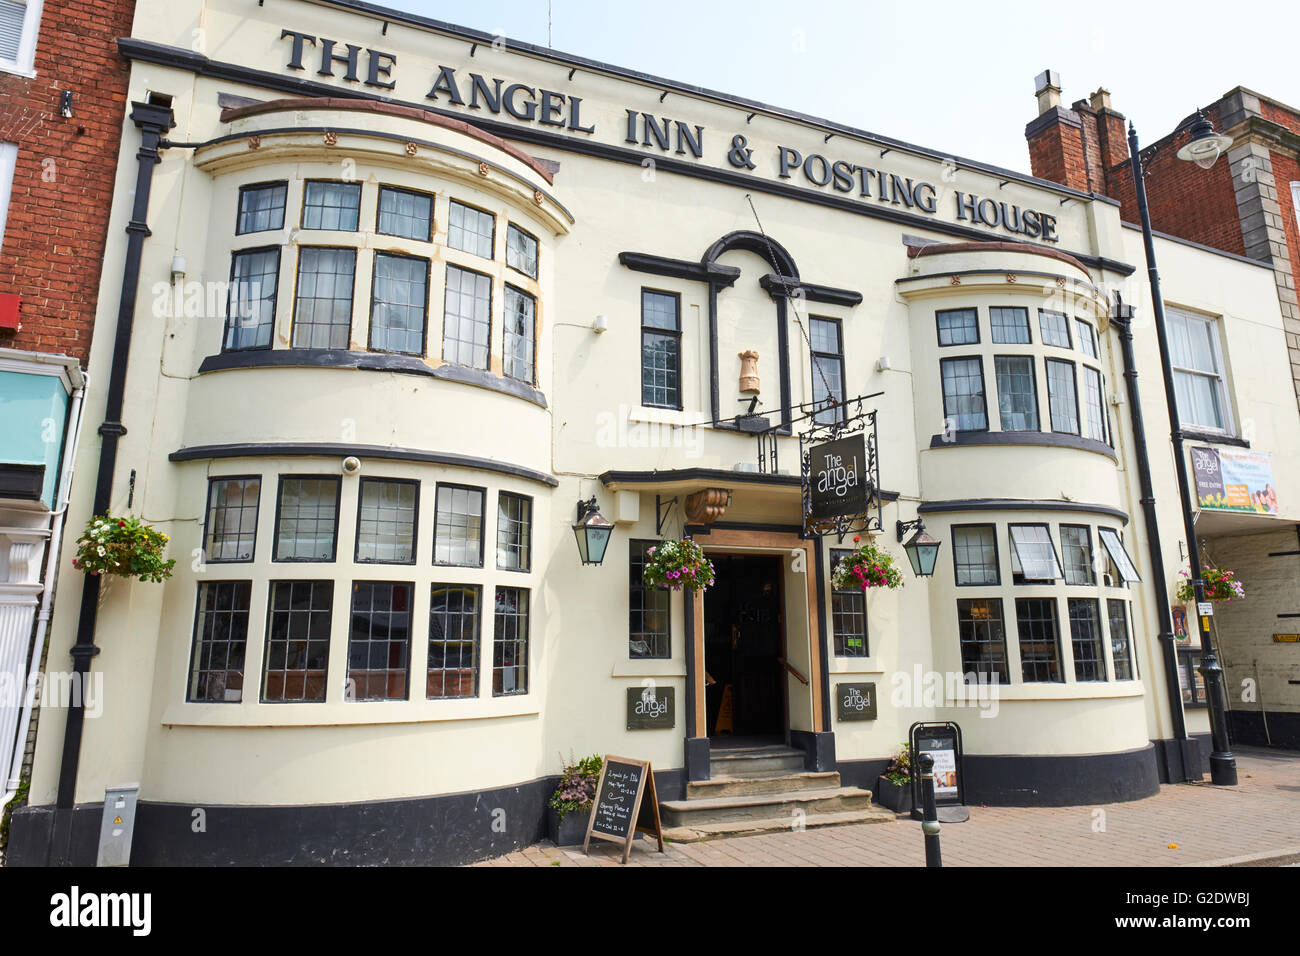 The Angel Inn And Posting House High Street Pershore Wychavon Worcestershire UK Stock Photo